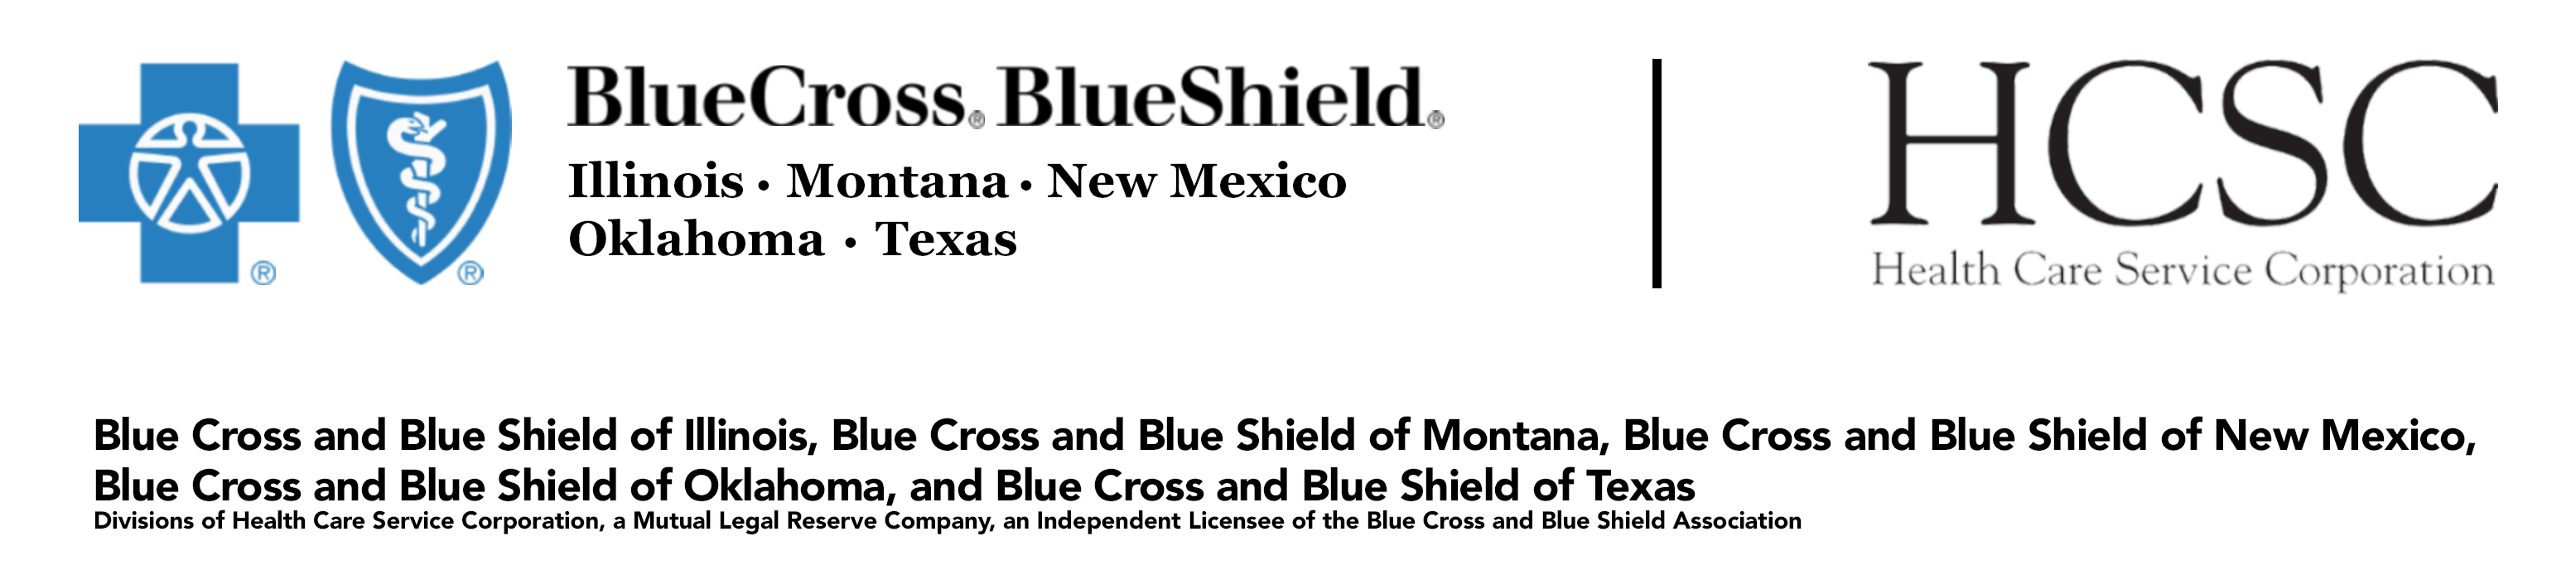 Watch the video Working With Our Team below to learn more about Health Care Service Corporation and its Blue Cross and Blue Shield divisions in Illinois, Montana, New Mexico, Oklahoma and Texas